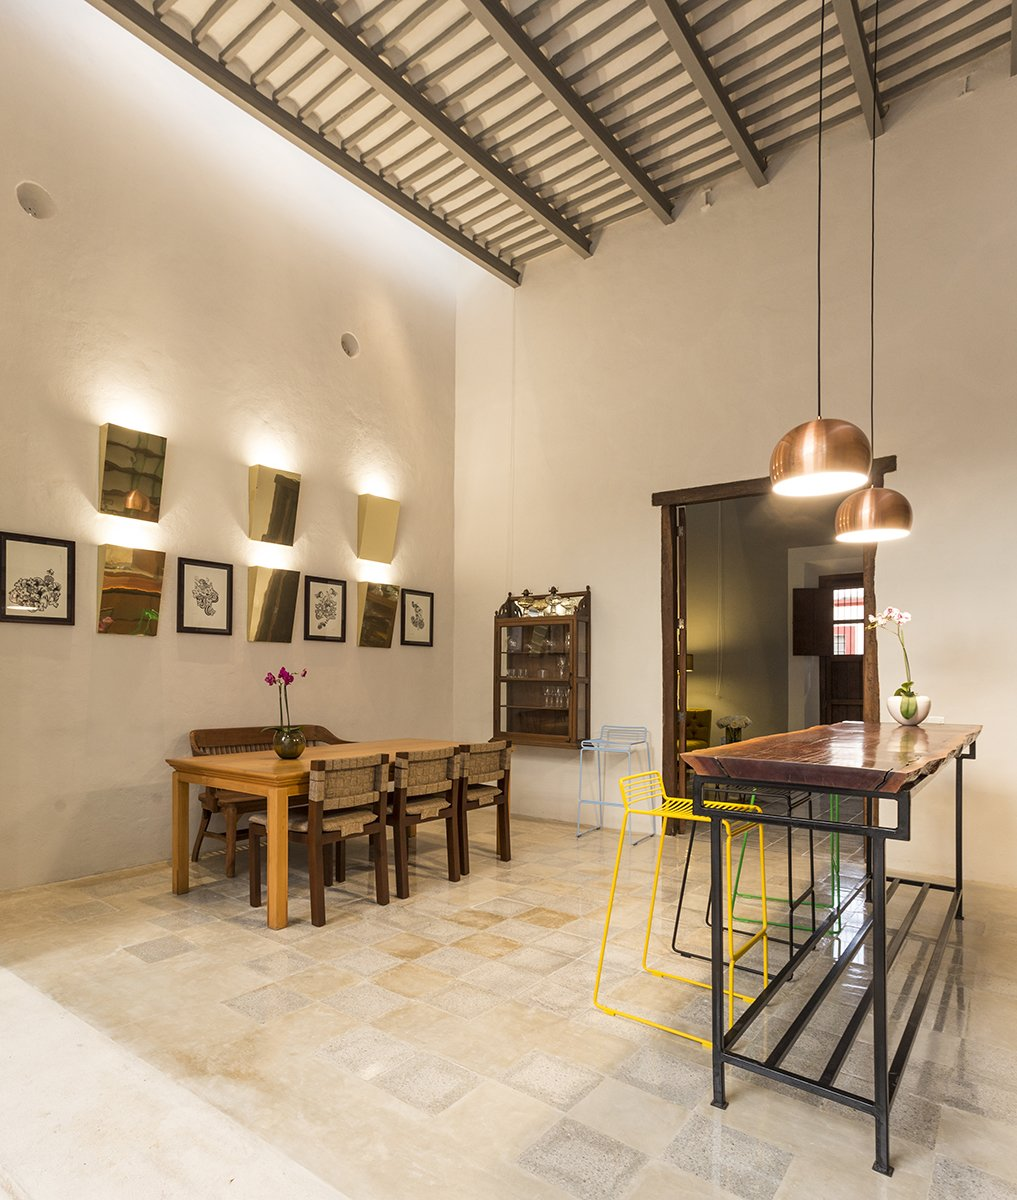 Dining Room, Wall Lighting, Pendant Lighting, Chair, Table, Shelves, and Cement Tile Floor The old ceilings and walls of the existing structure  were preserved to keep the spirit of the old house  Lemon Tree House by Taller Estilo Arquitectura S de R.L de C.V